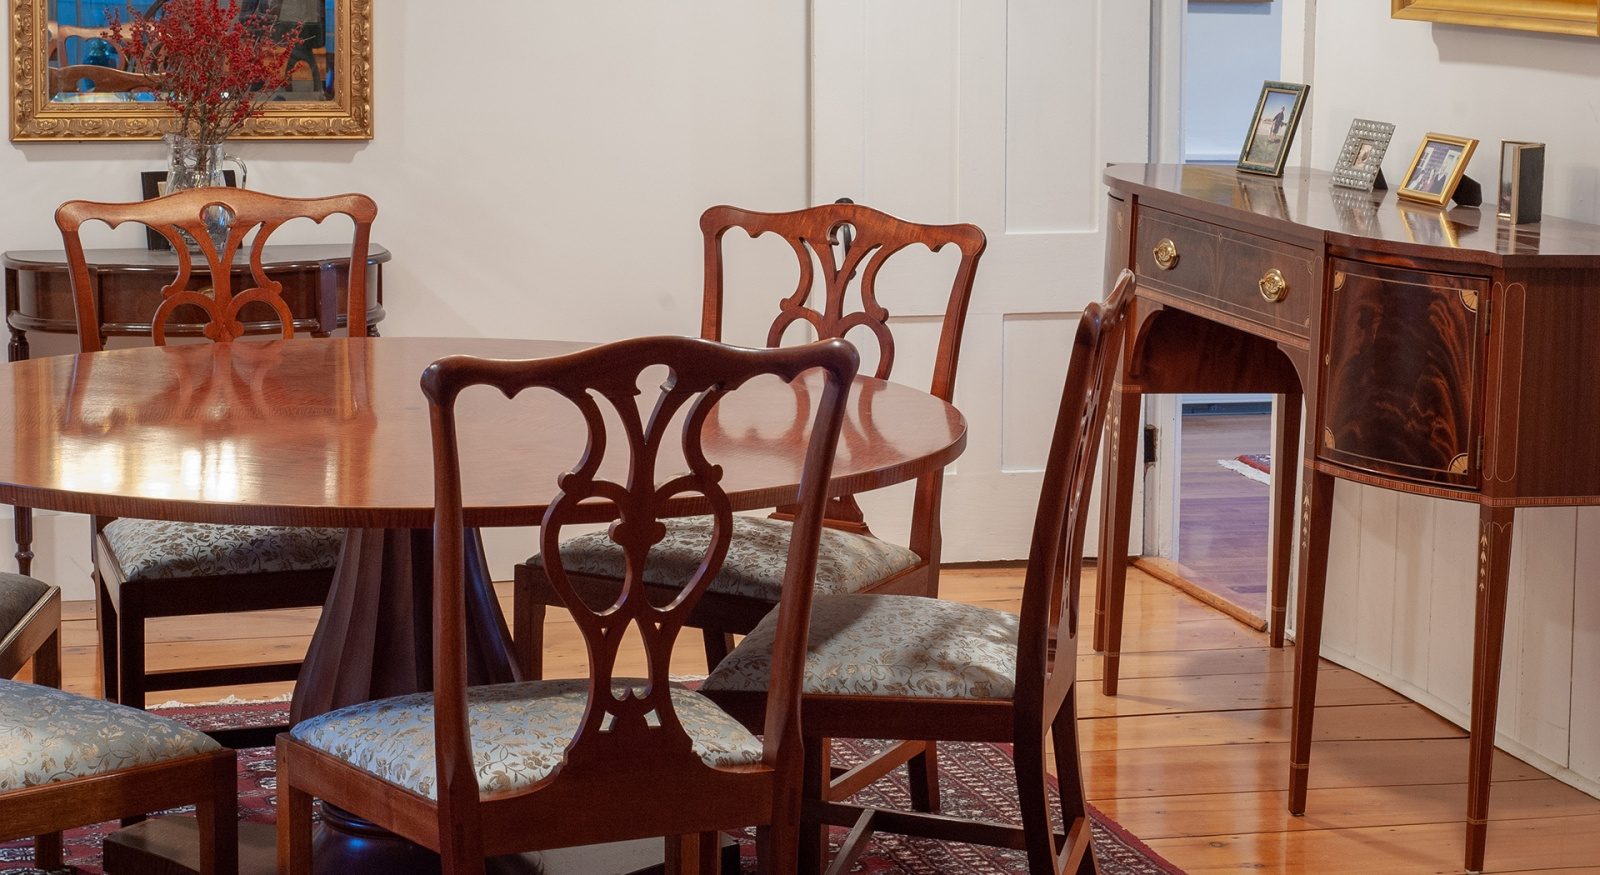 Dining table and chairs with a side table, created by Roger Myers